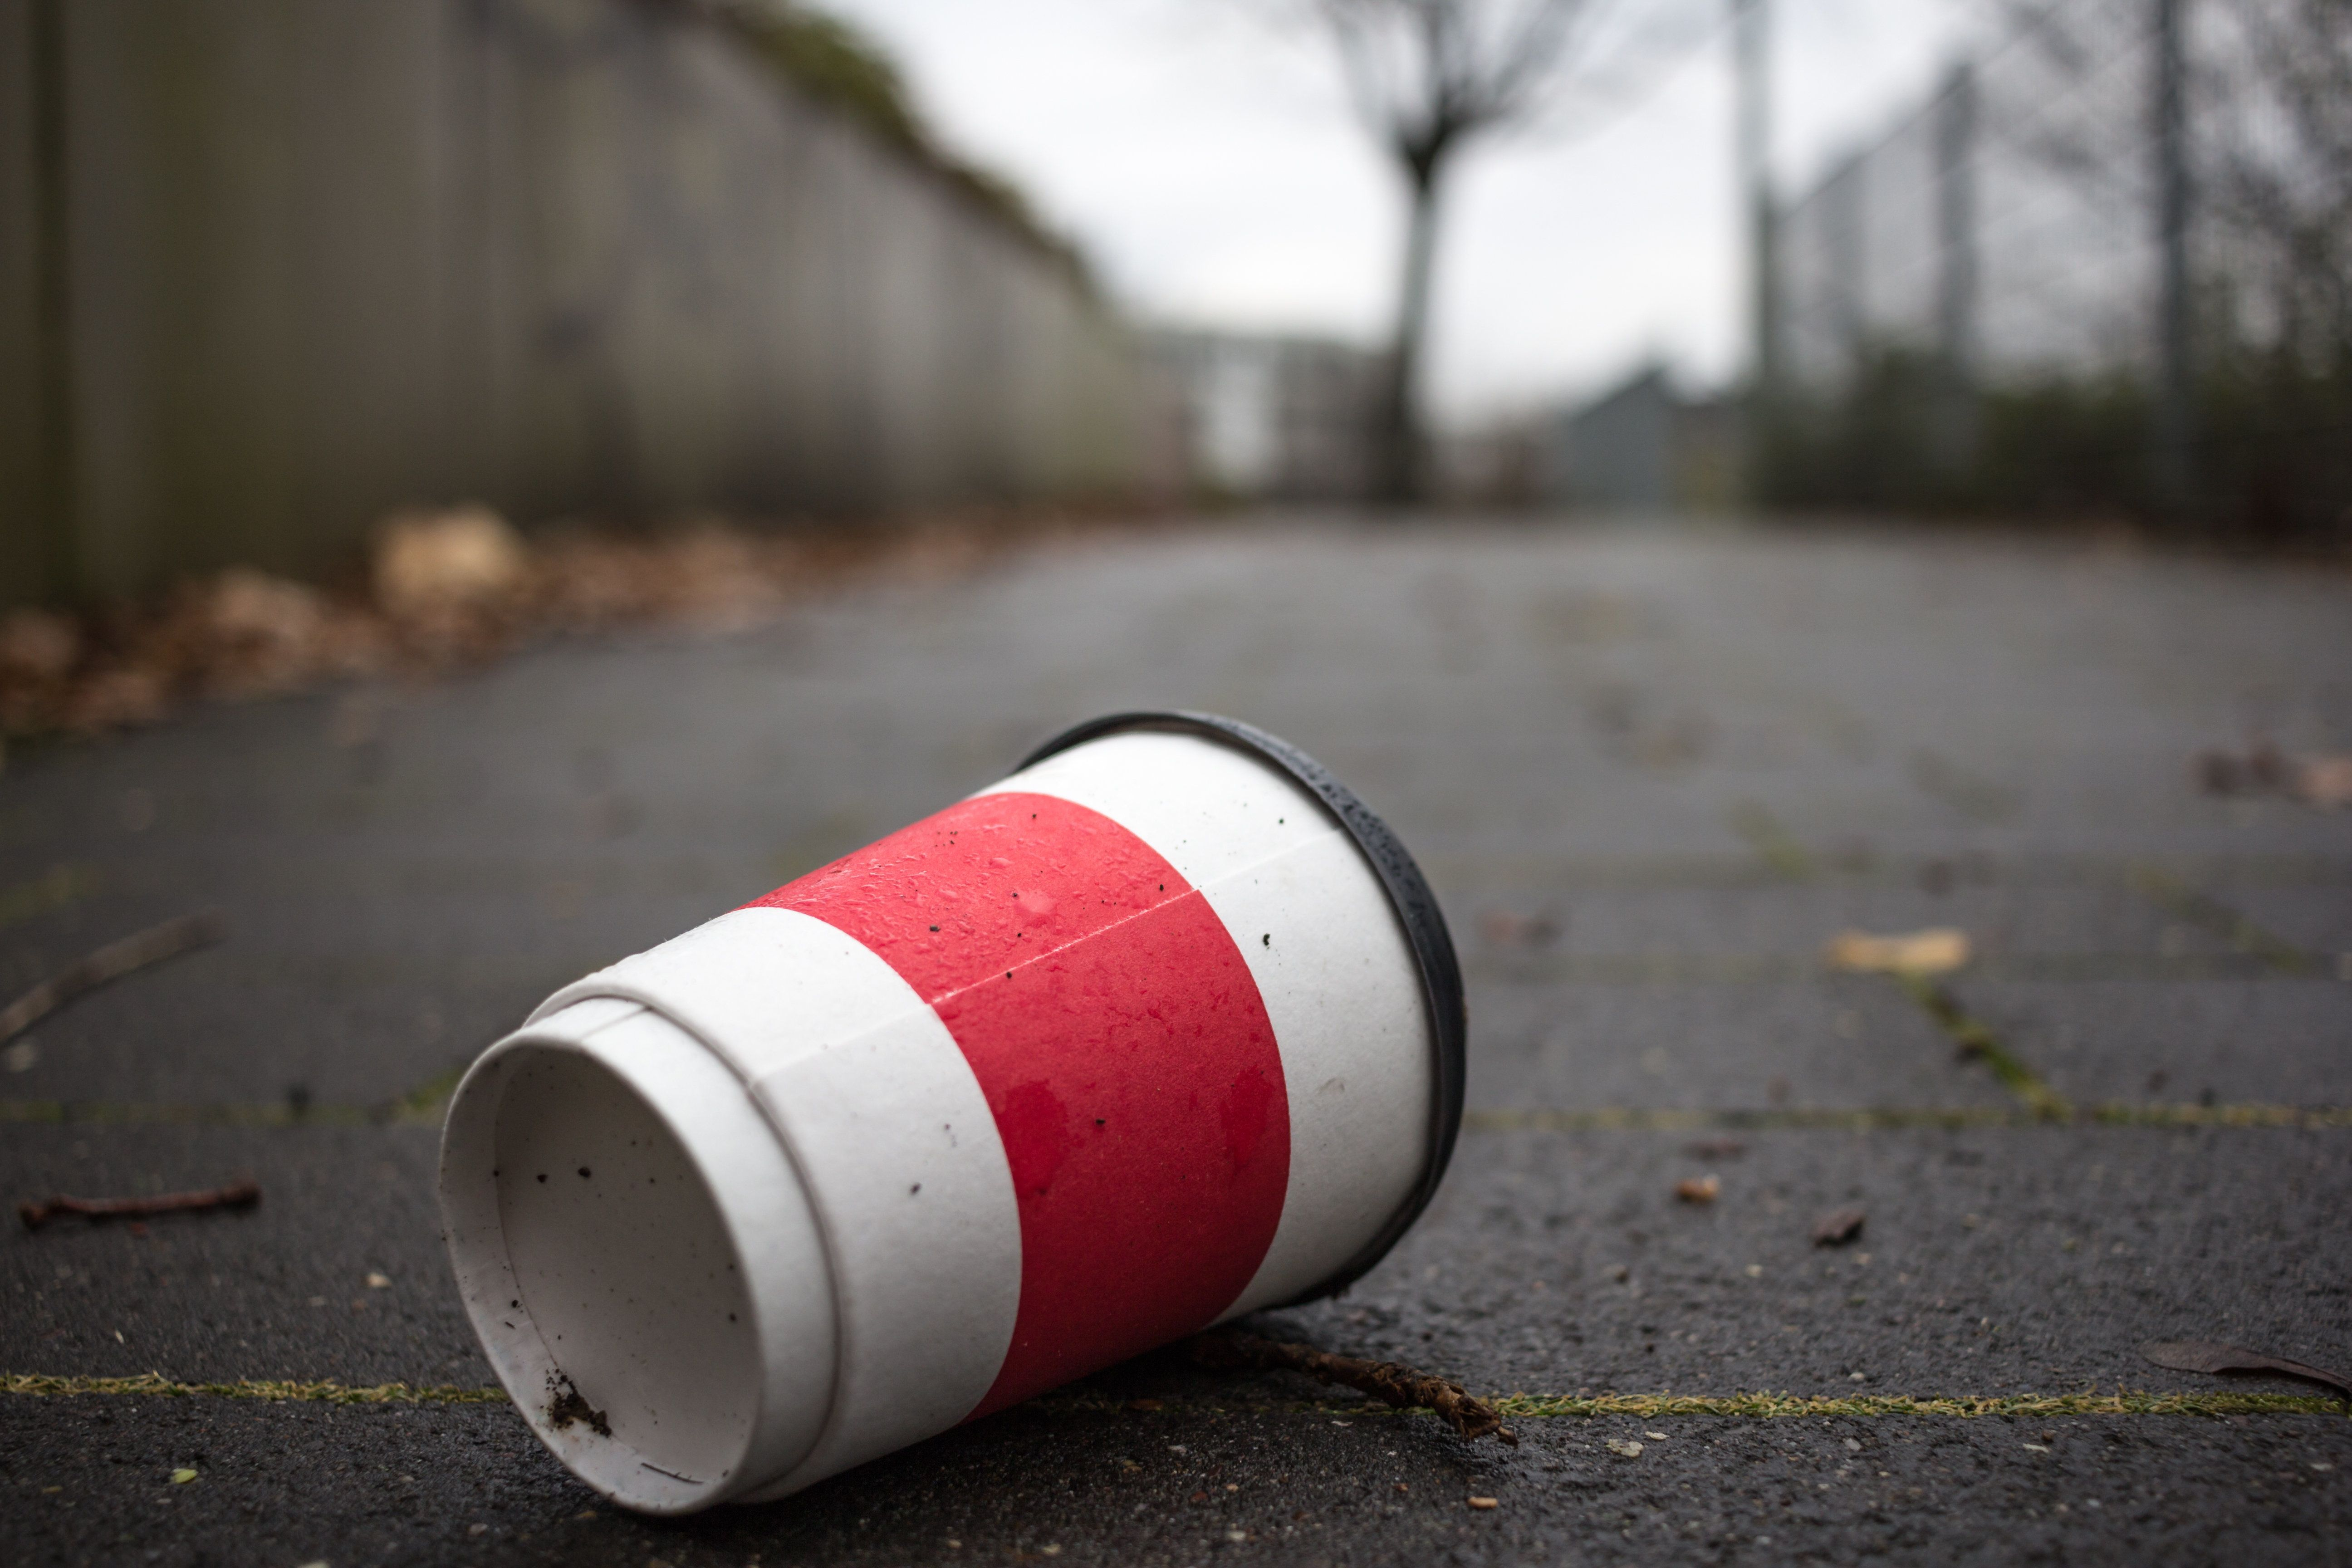 Used Coffee mug at sidwalk as symbol for pollution